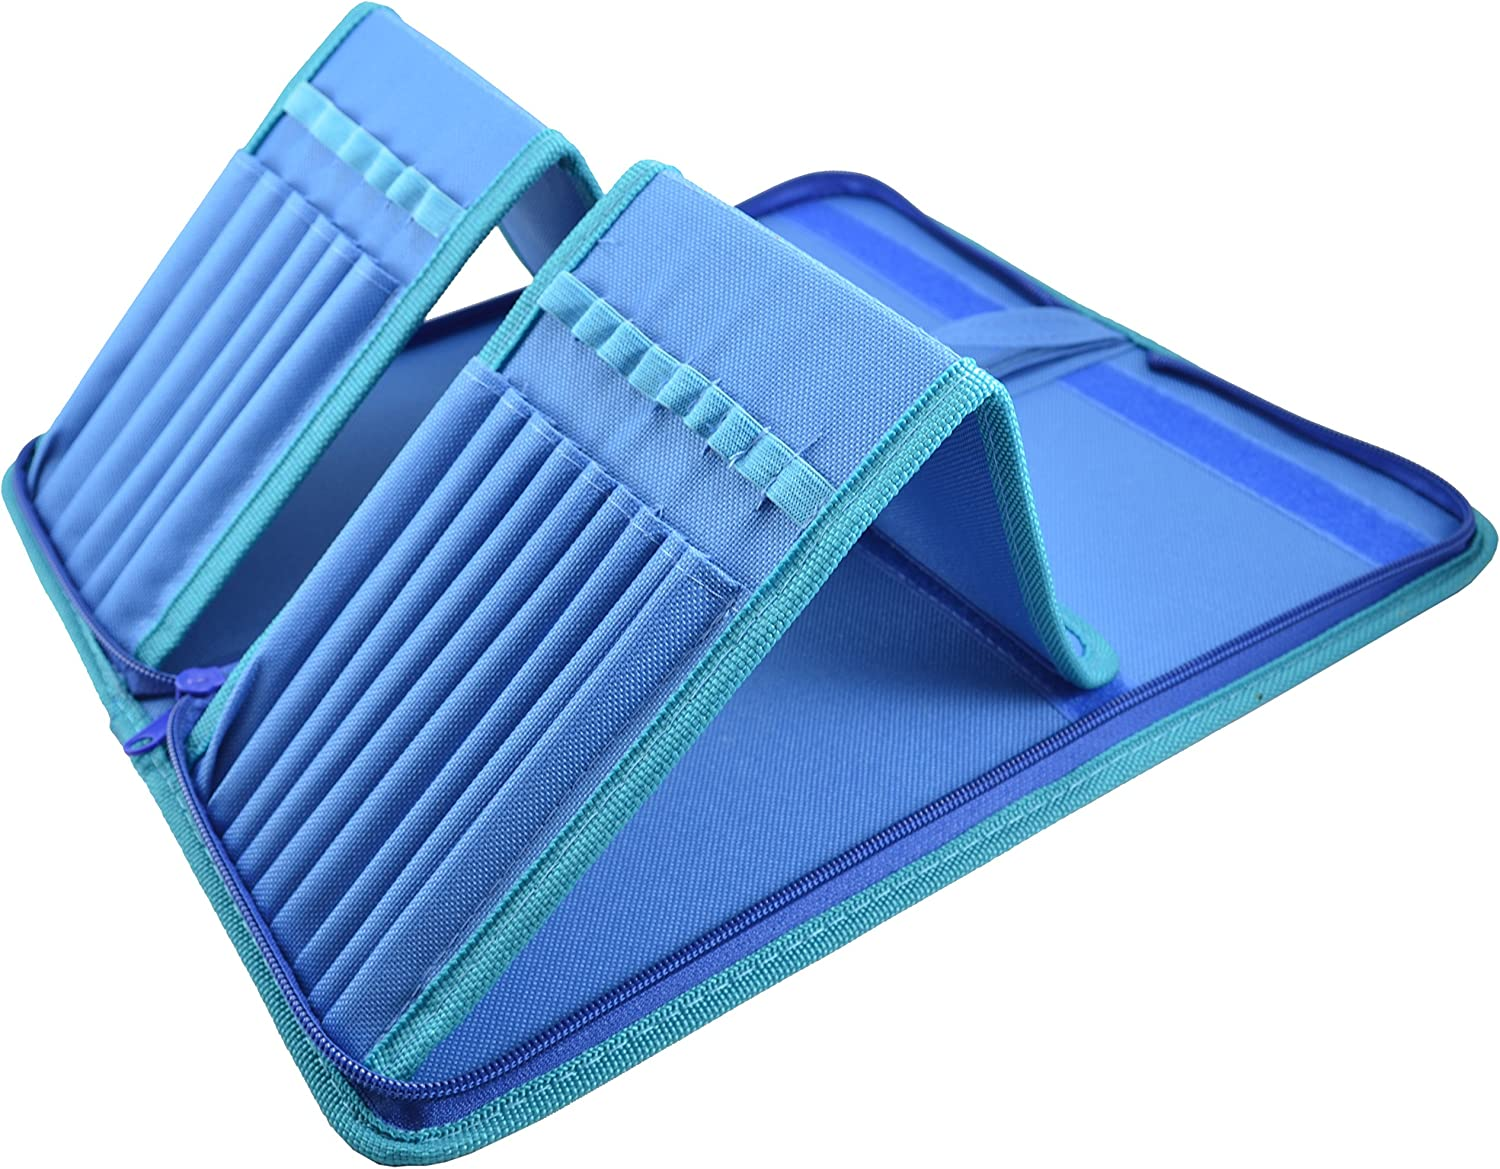 B013W3KONO Paint Brush Holder - Organizer for 15 Long Handle Brushes - Storage for Acrylic, Oil & Watercolor Art Paintbrushes - Artists' Quality Supplies by MyArtscape™ (Cool Blue) 91uIeHRE6PL